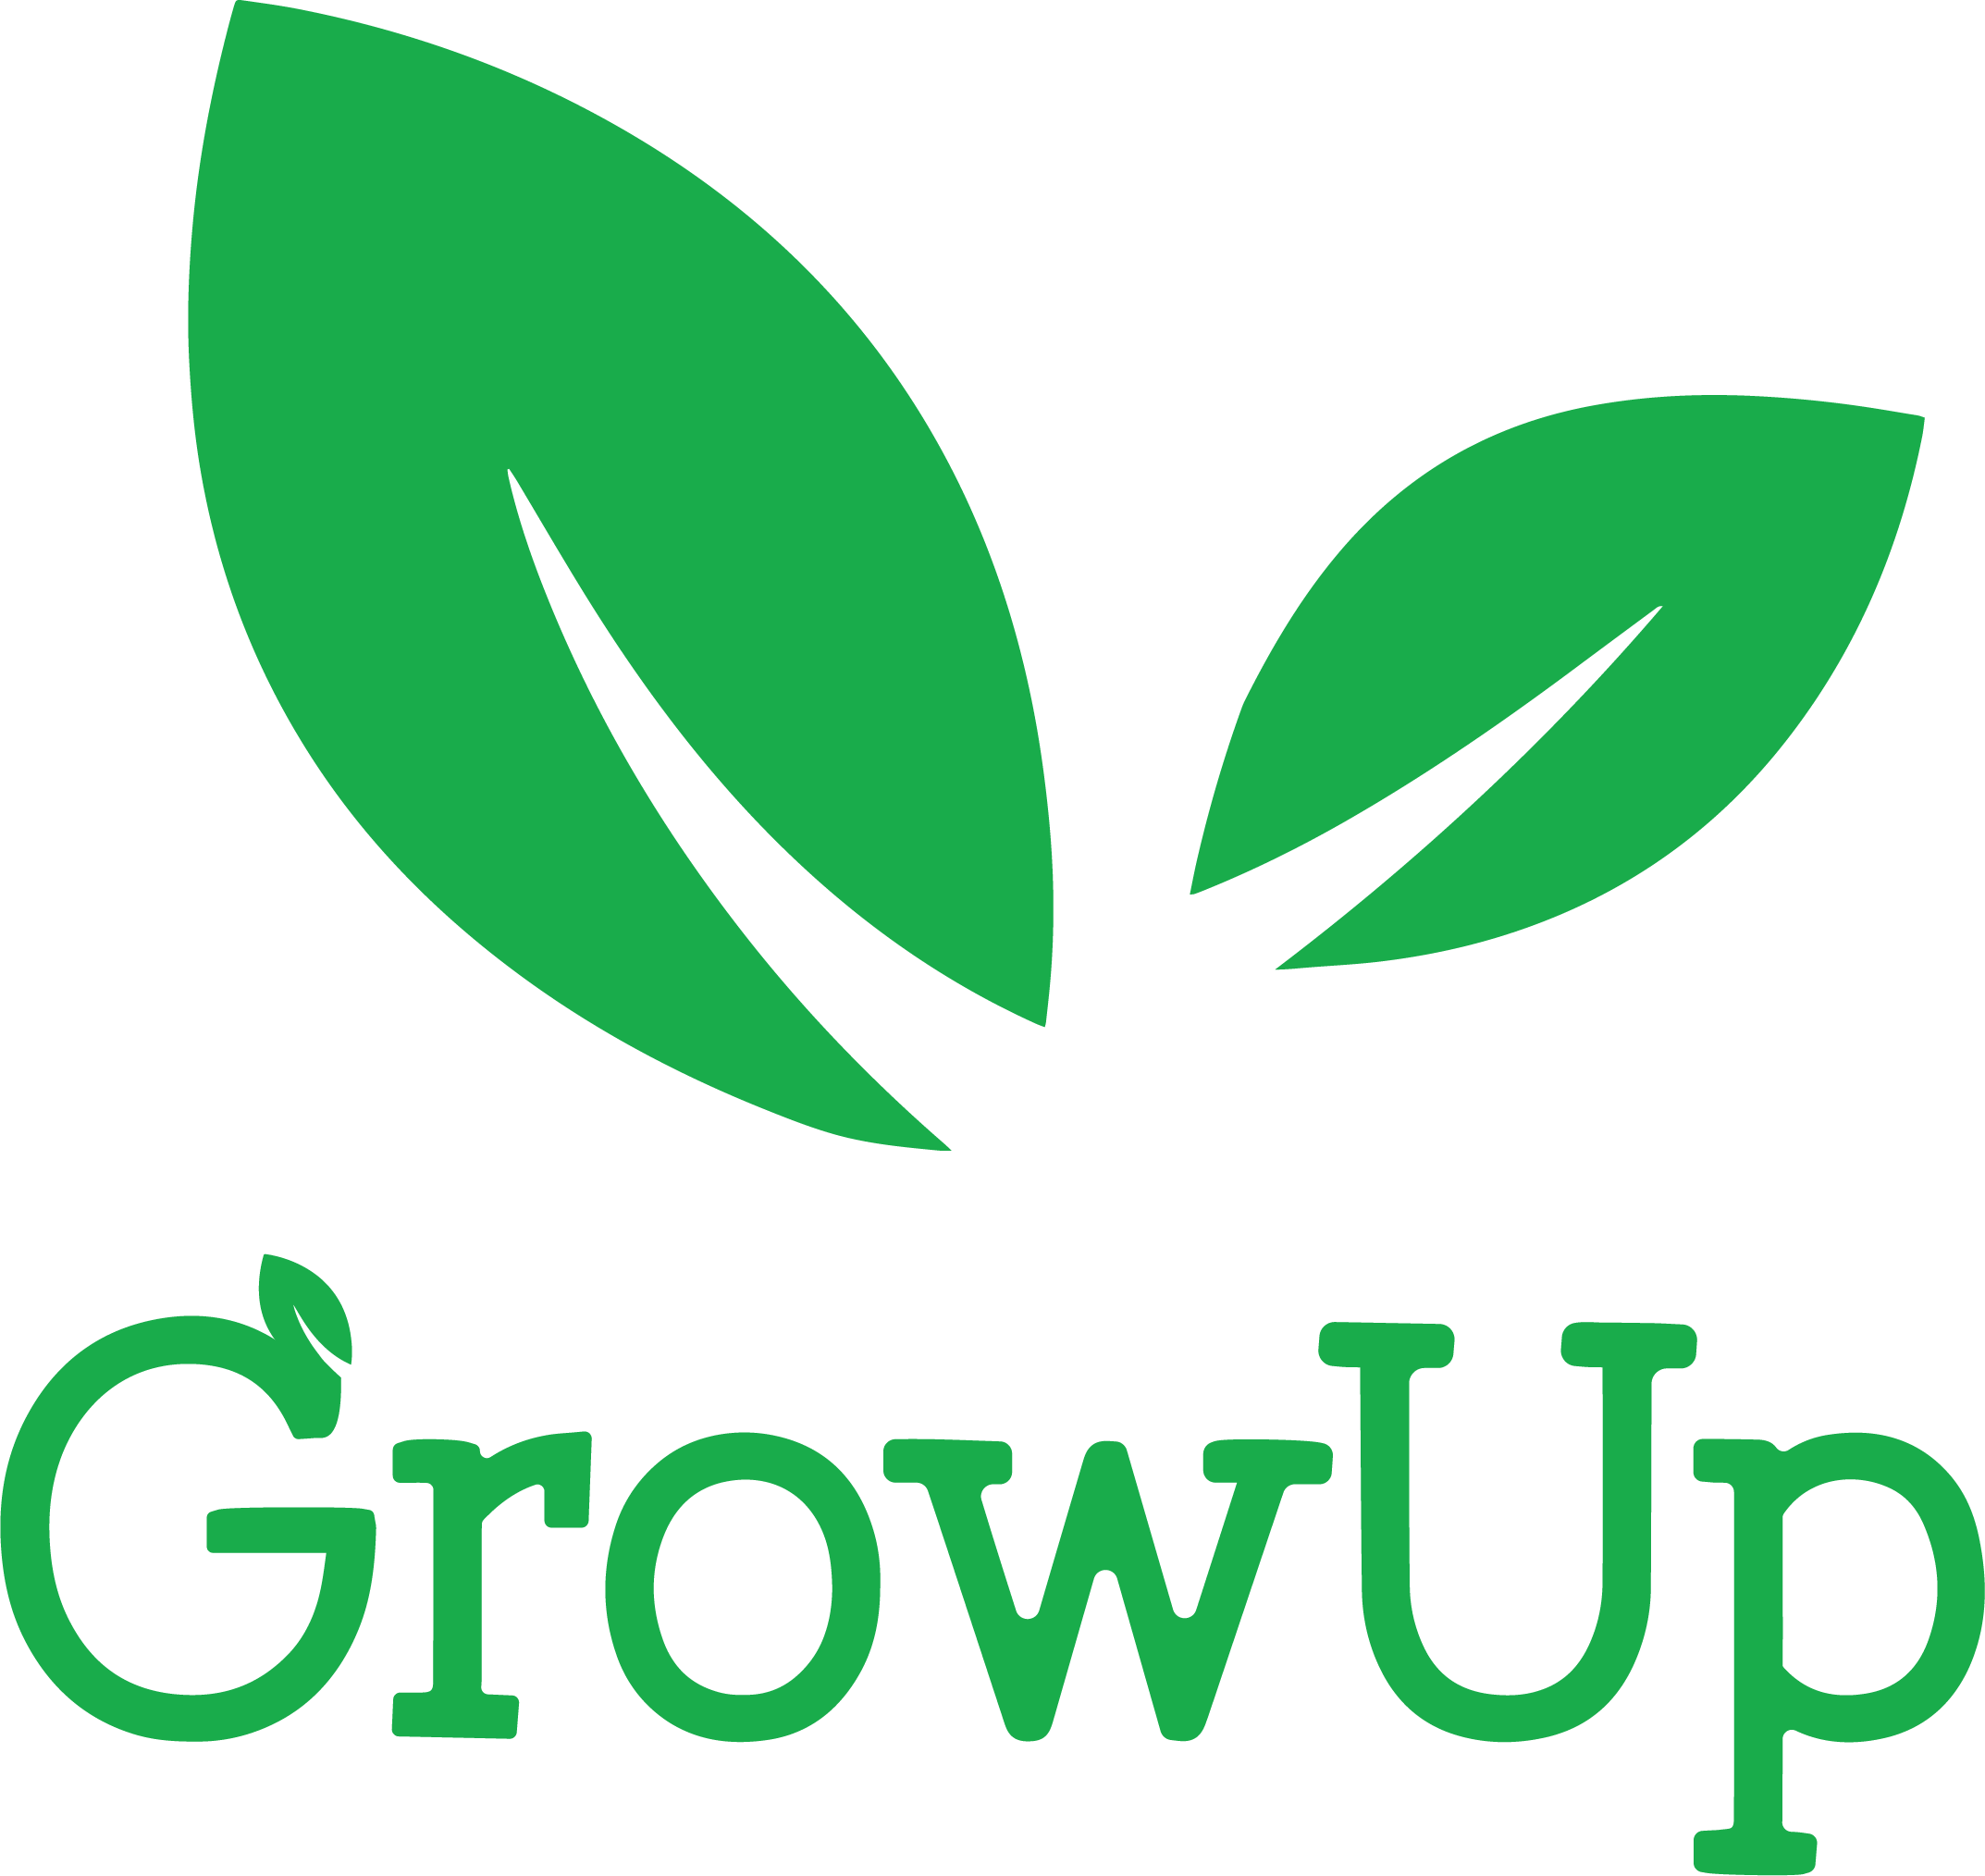 GROW UP ROUNDED logo August 2017